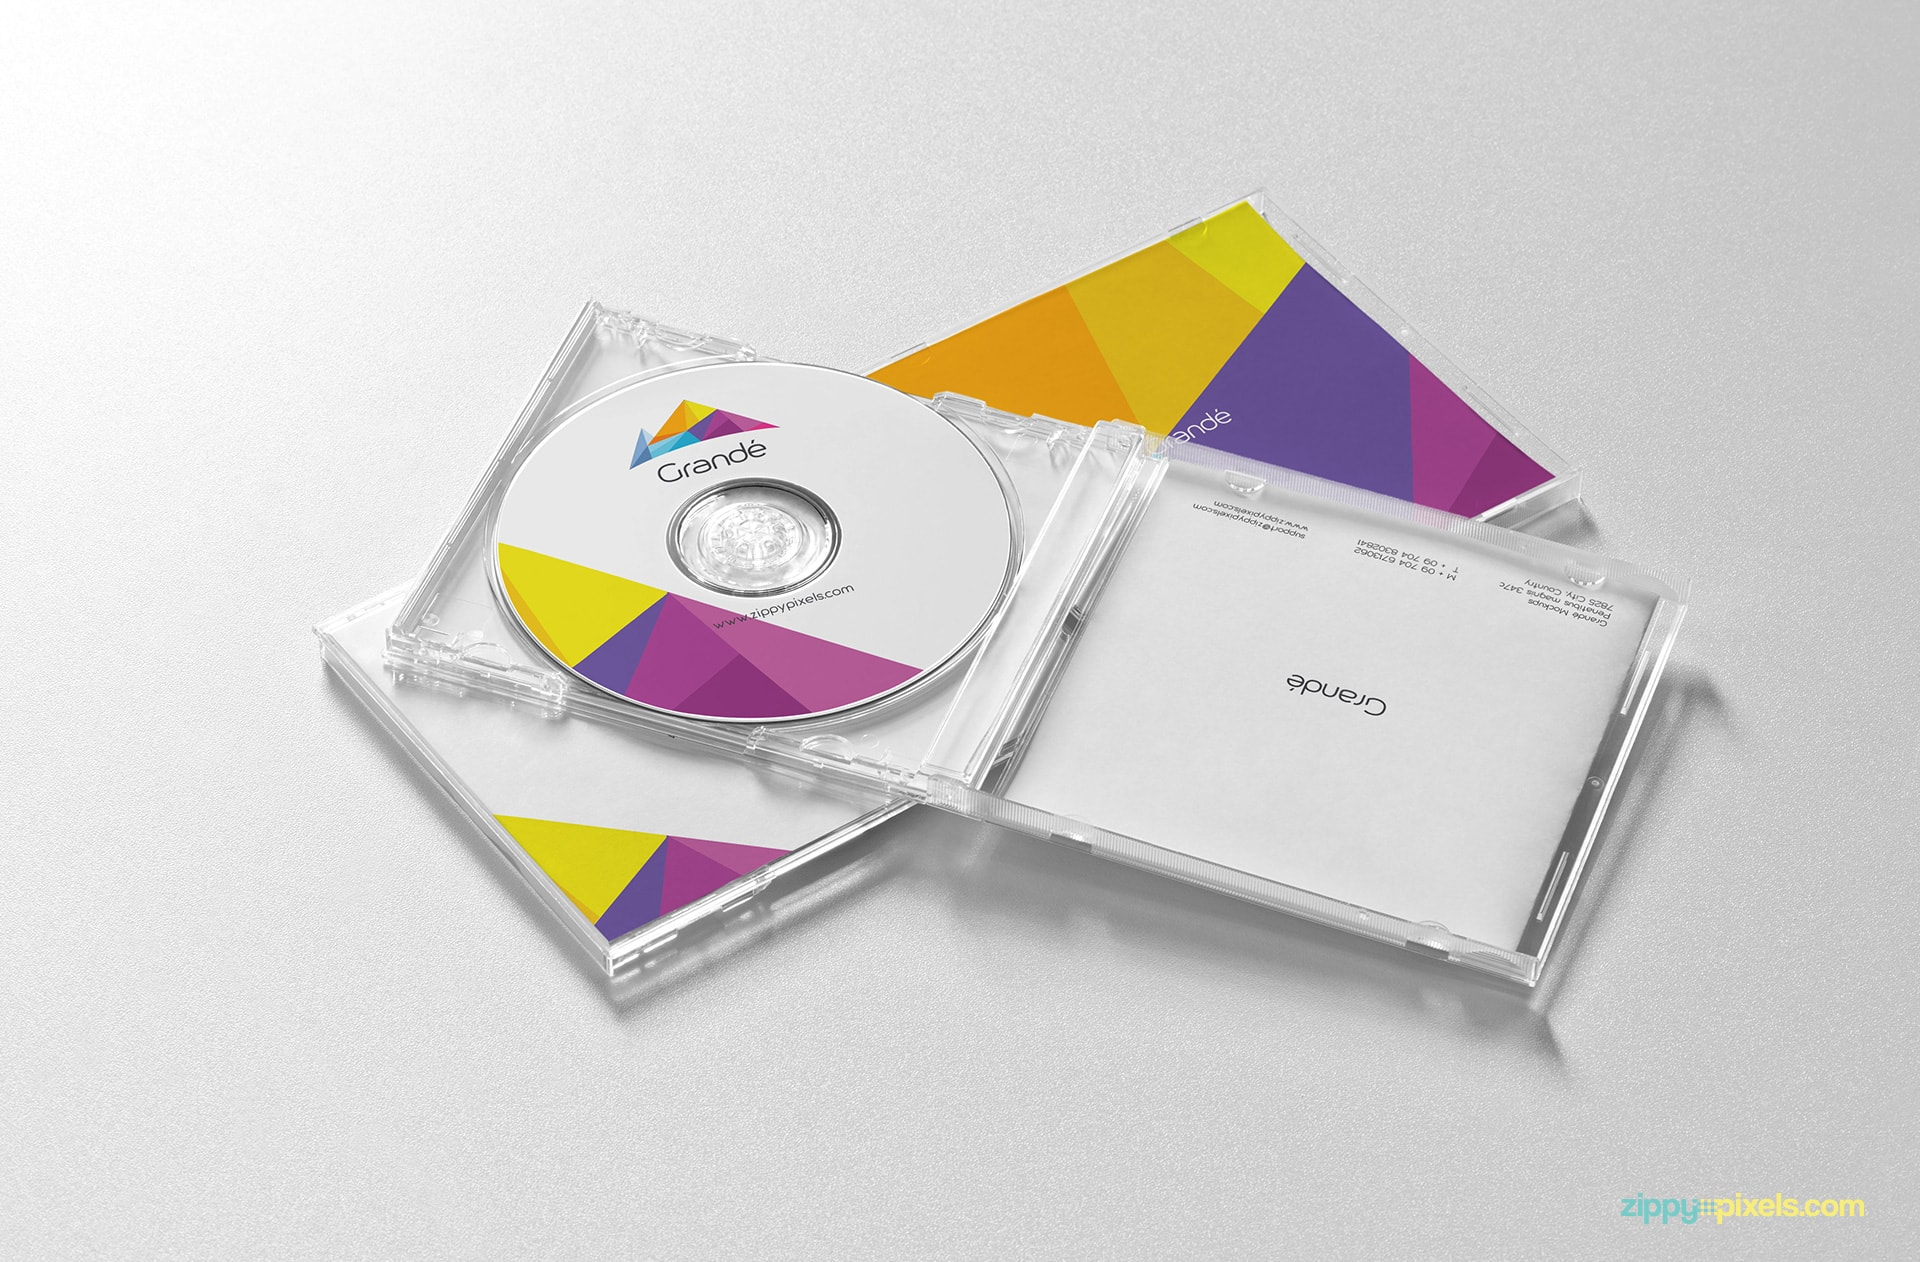 Brand Identity Mockup of CD Covers